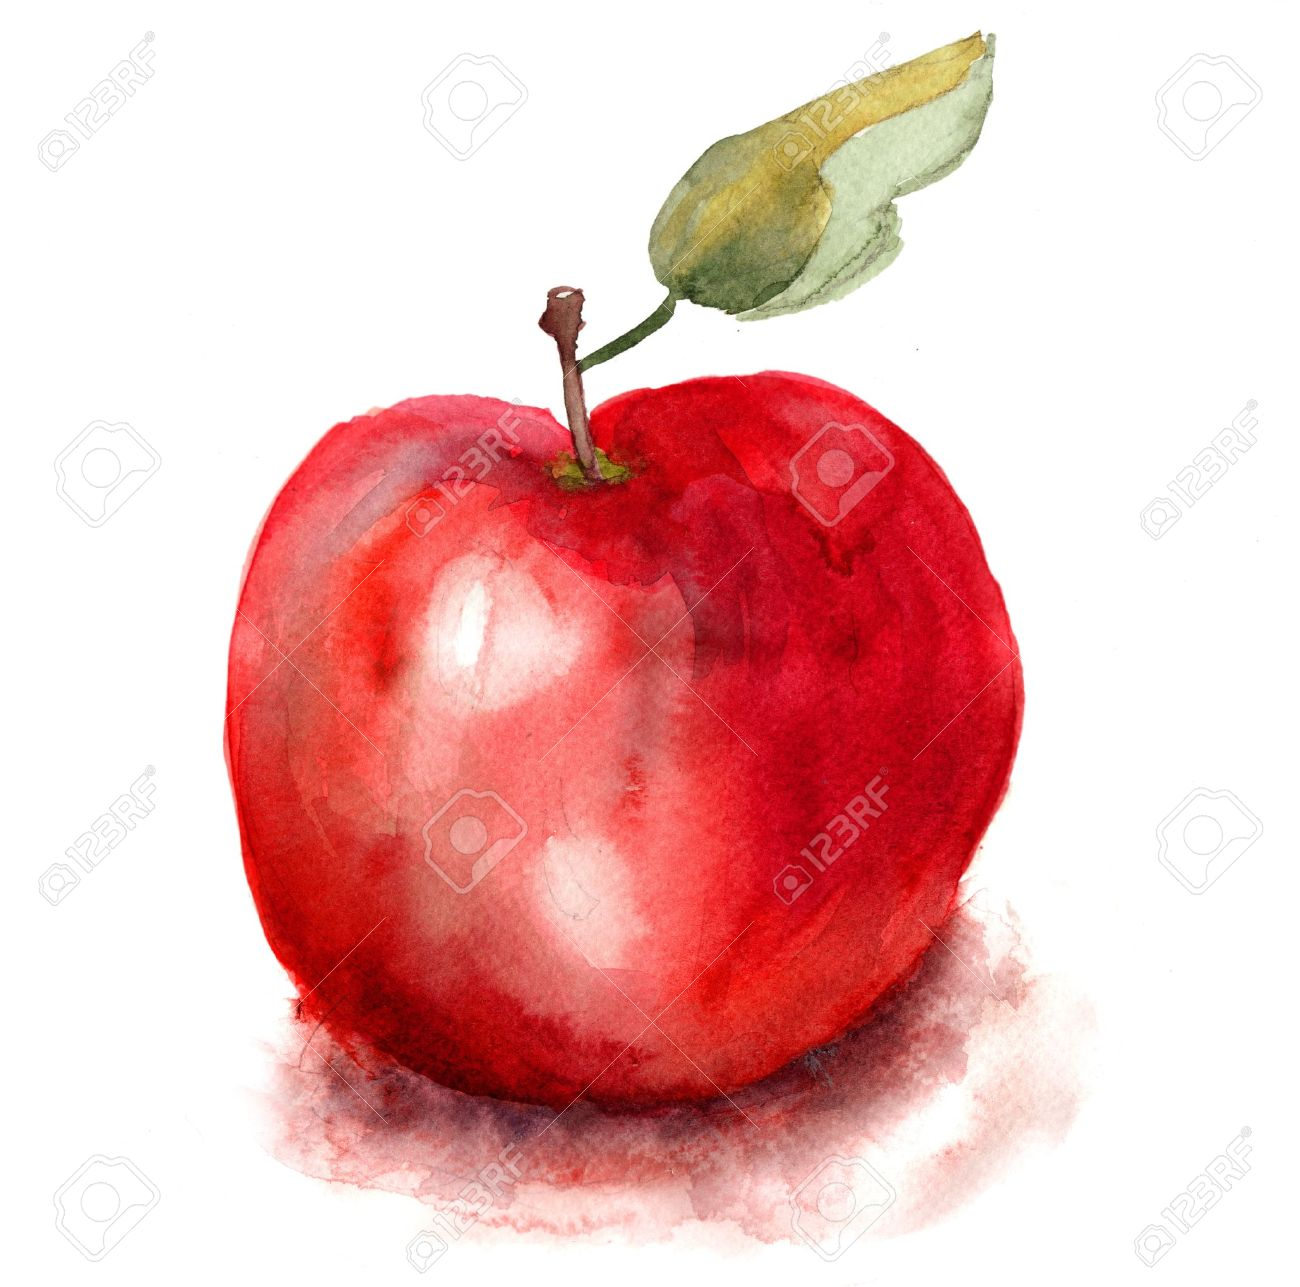 Stylized Watercolor Apple Illustration Stock Photo Picture And